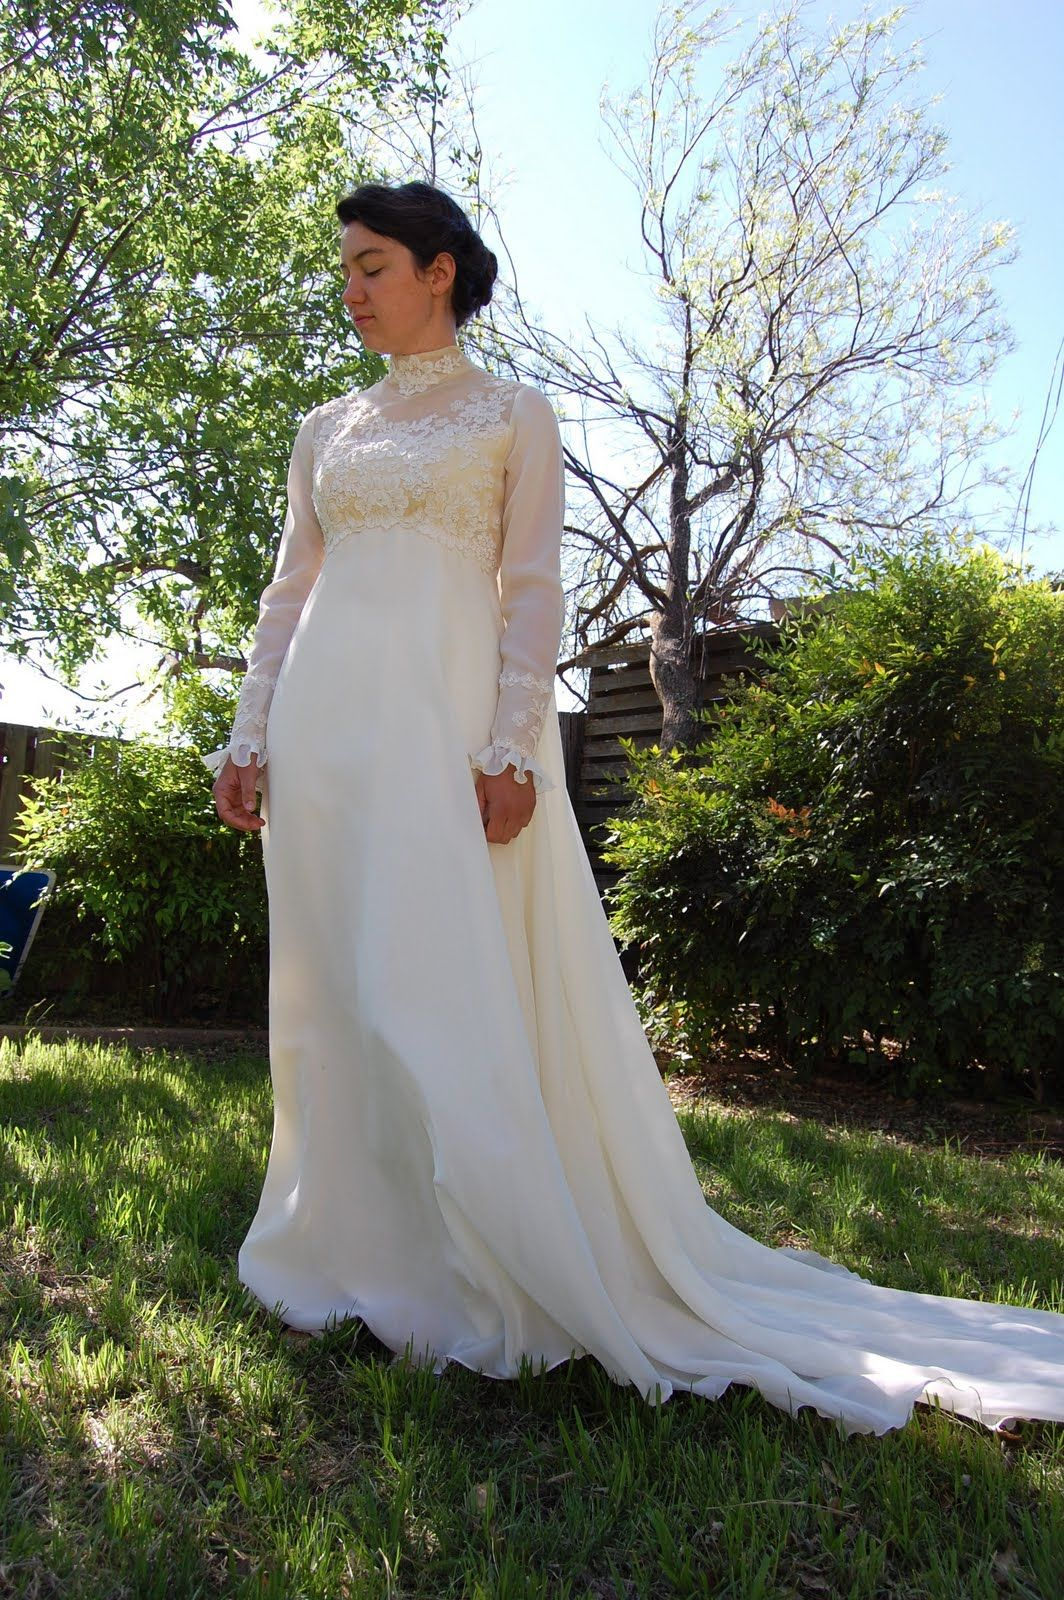 Long sleeved lace wedding dress  regency wedding dresses  regency style  Sunlight and Lace